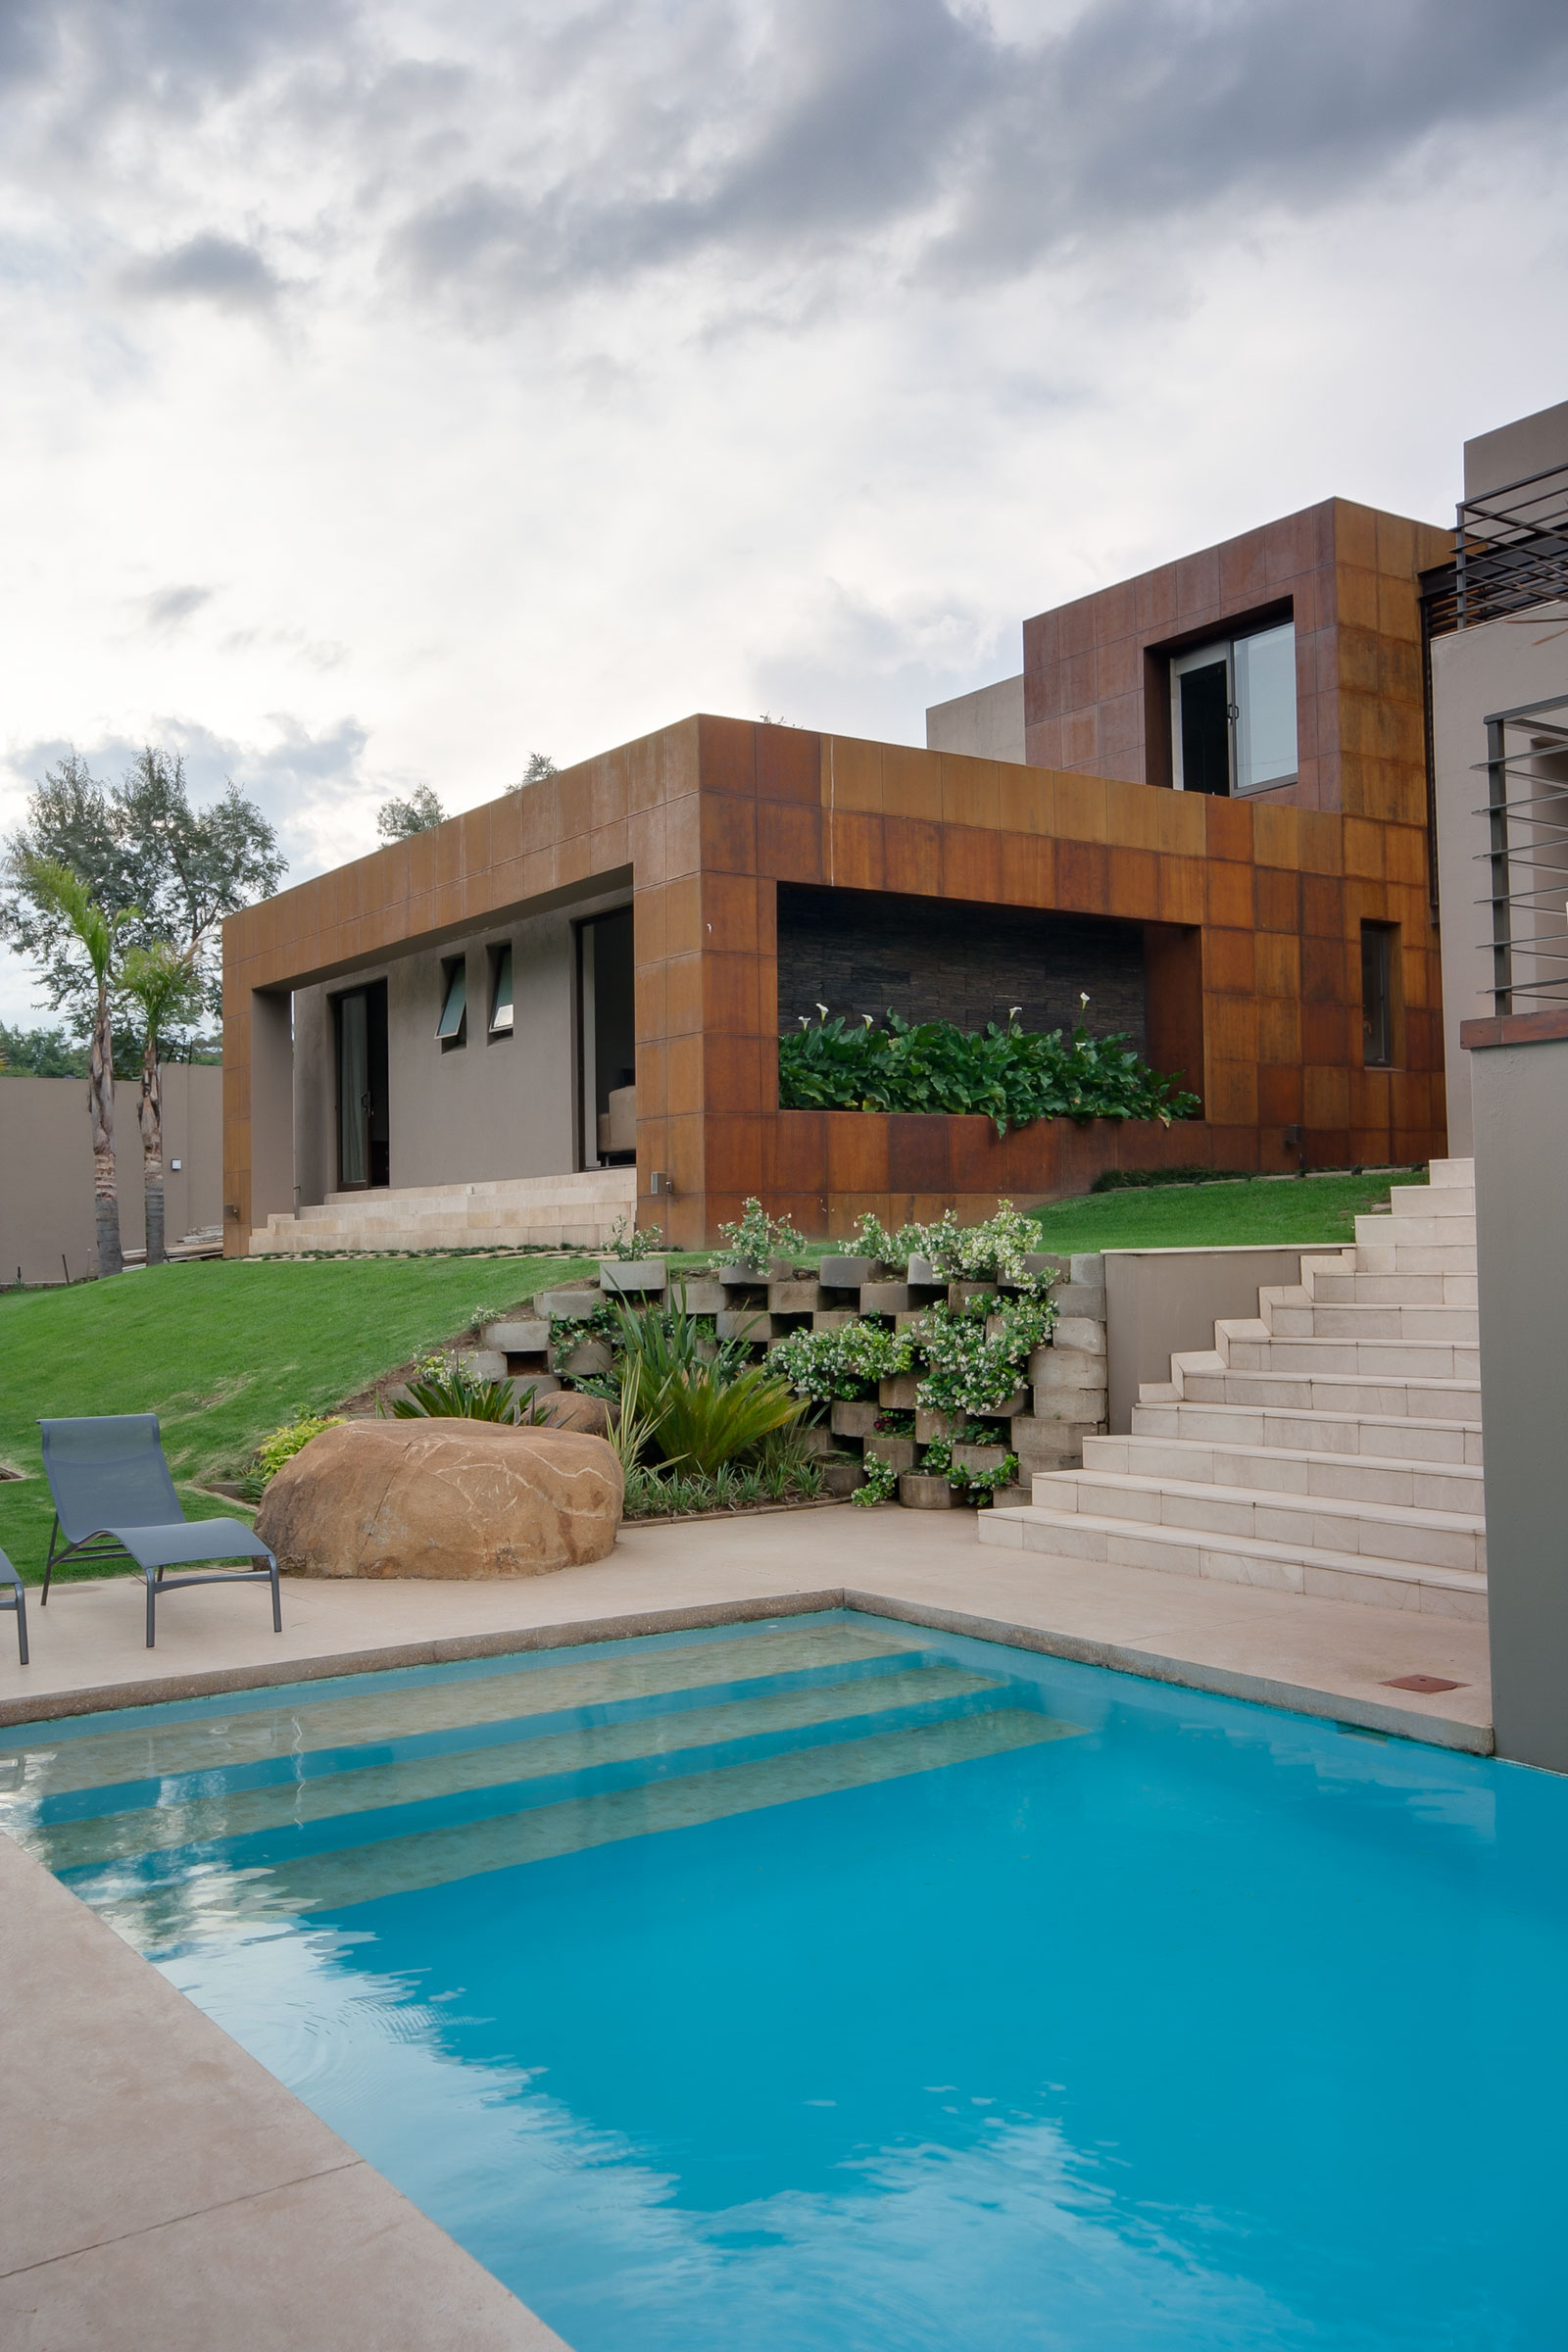 House Sed by Nico van der Meulen Architects (5)